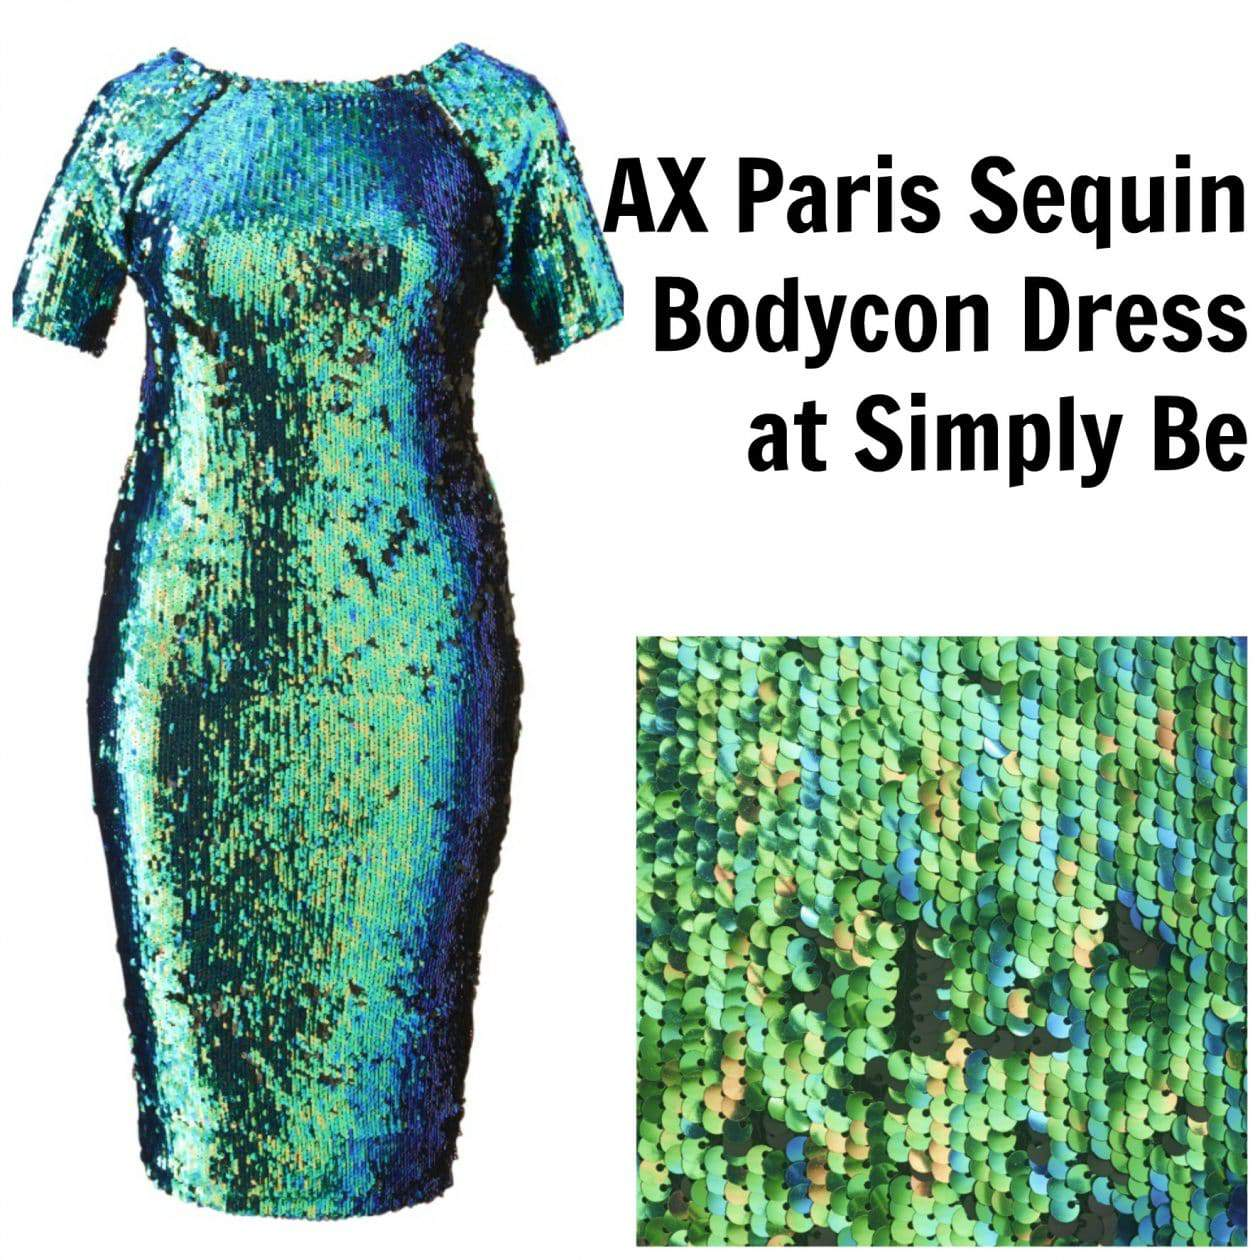 AX Paris Plus Size Sequins Bodycon Dress and more at Simply Be